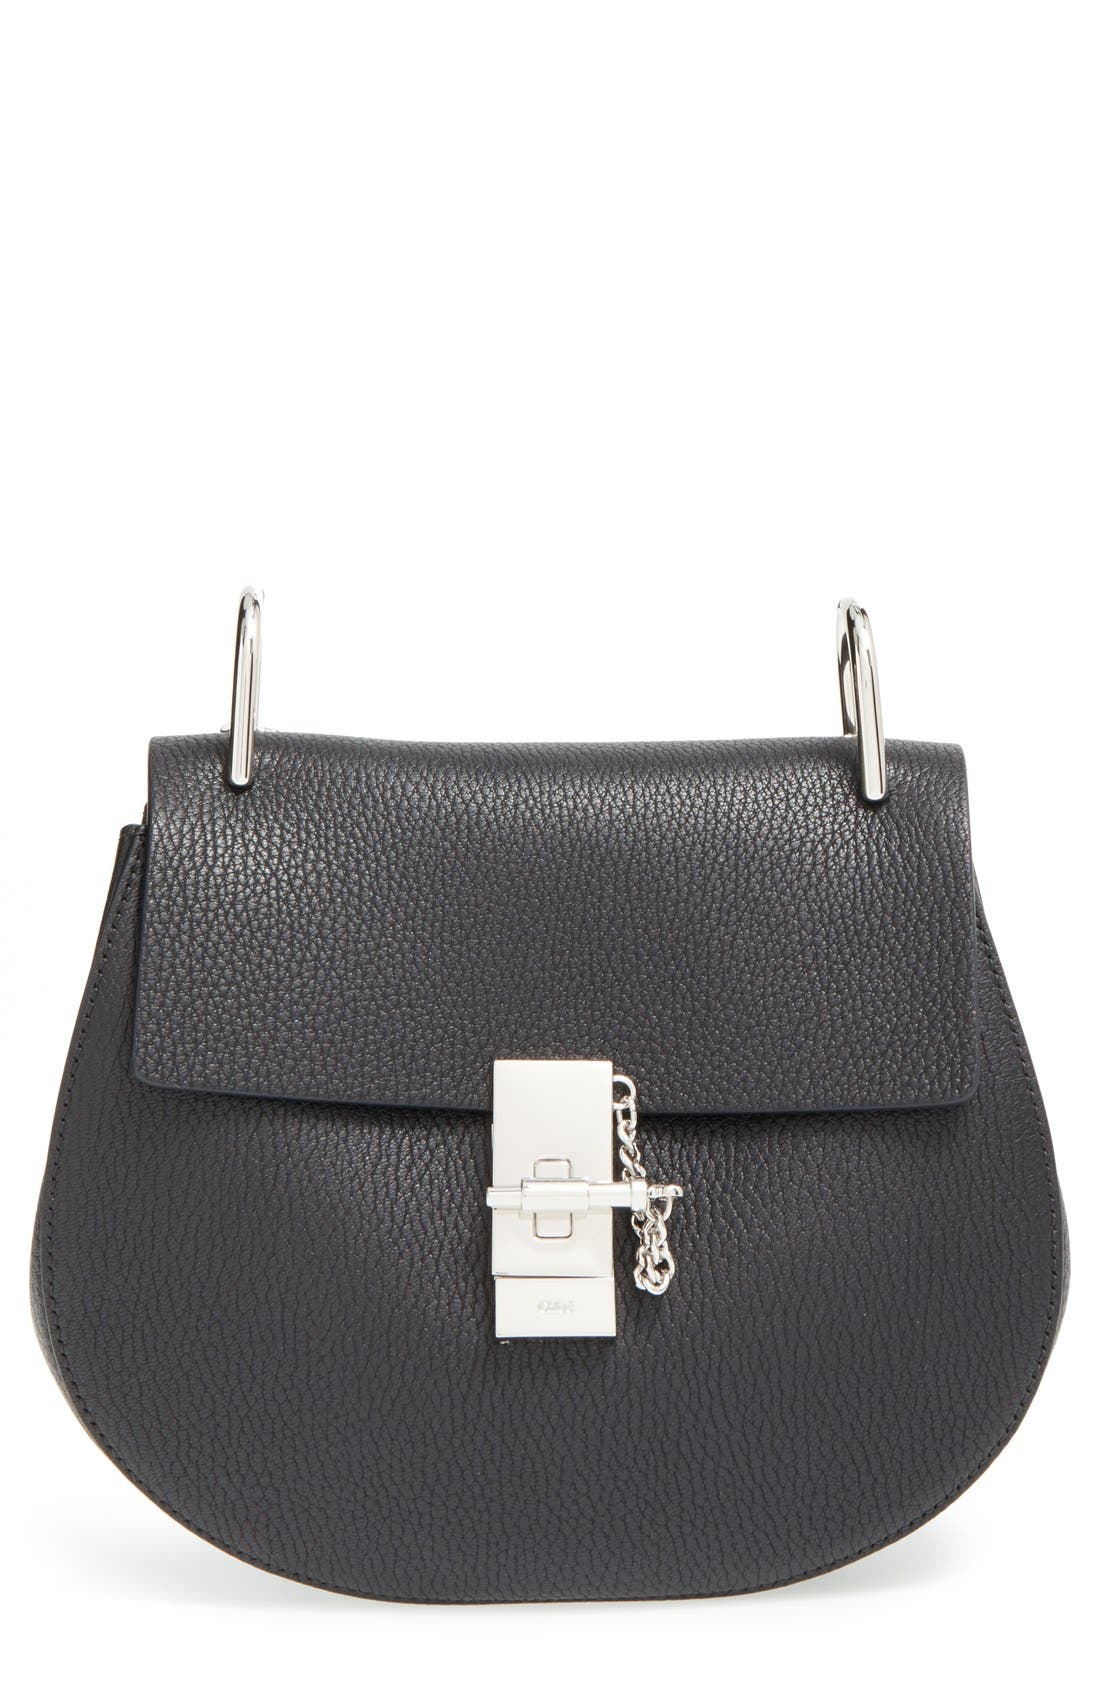 'Small Drew' Leather Shoulder Bag,                         Main,                         color, 001